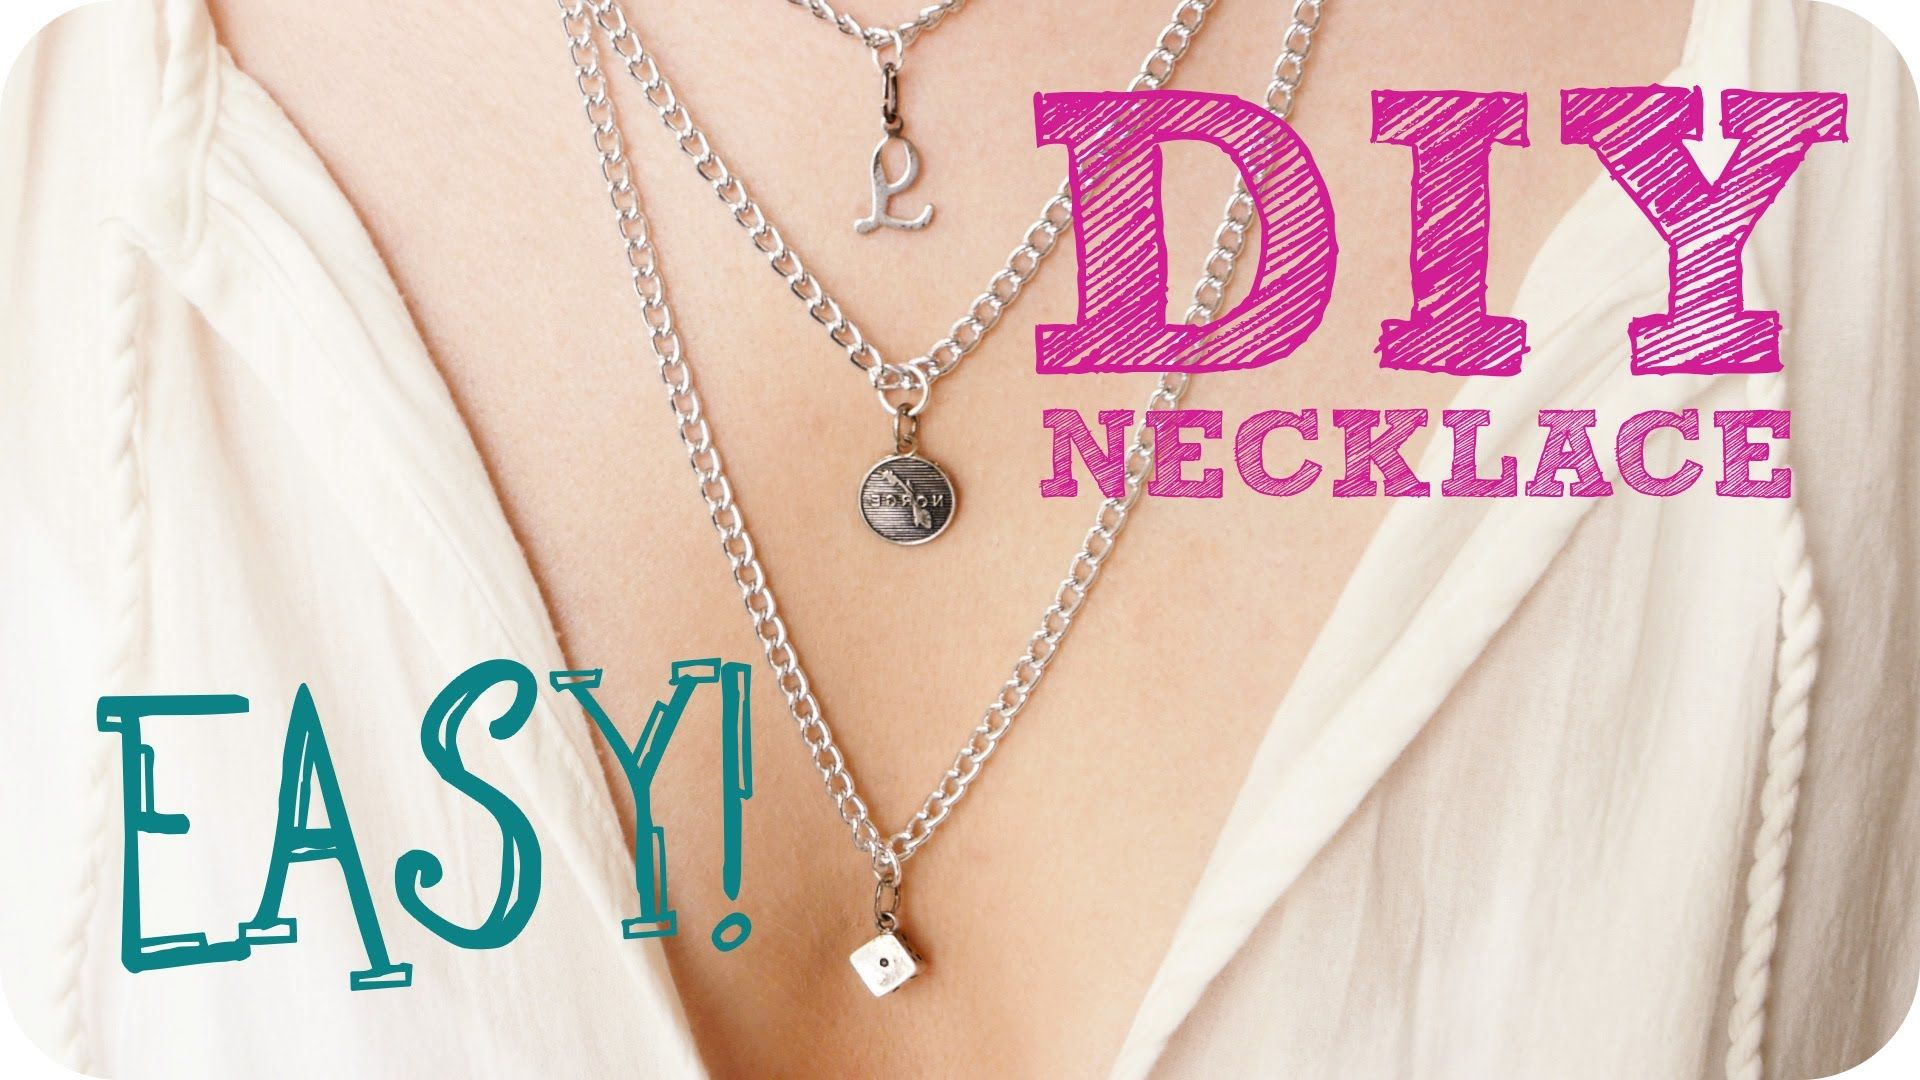 5 Pairs  Brass cute Cross crystal necklace pendant for women DIY handmade necklace jewelry accessories making findings